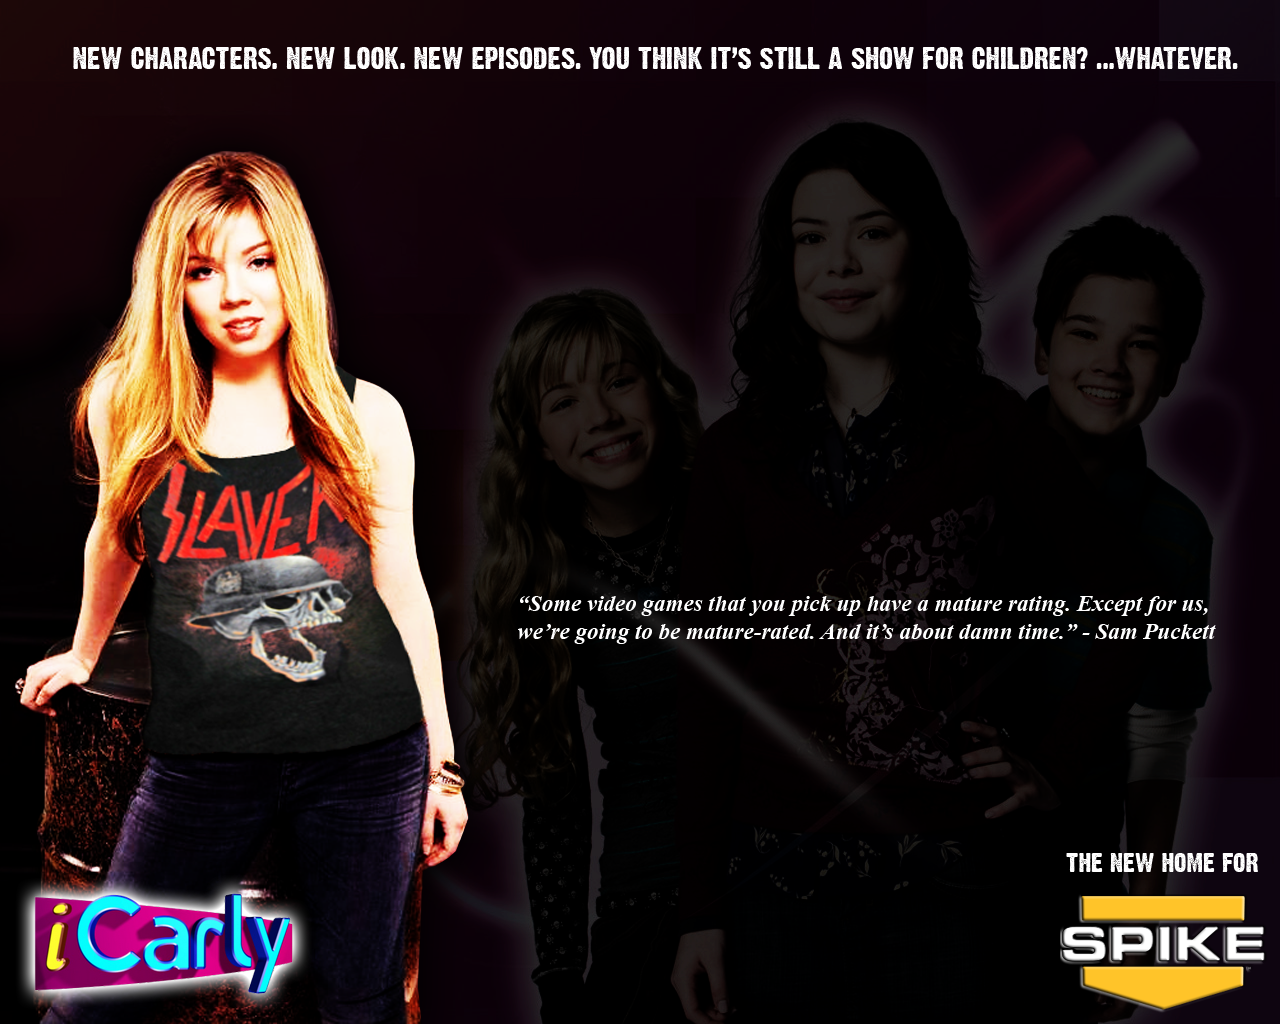 Icarly Carly S New Room